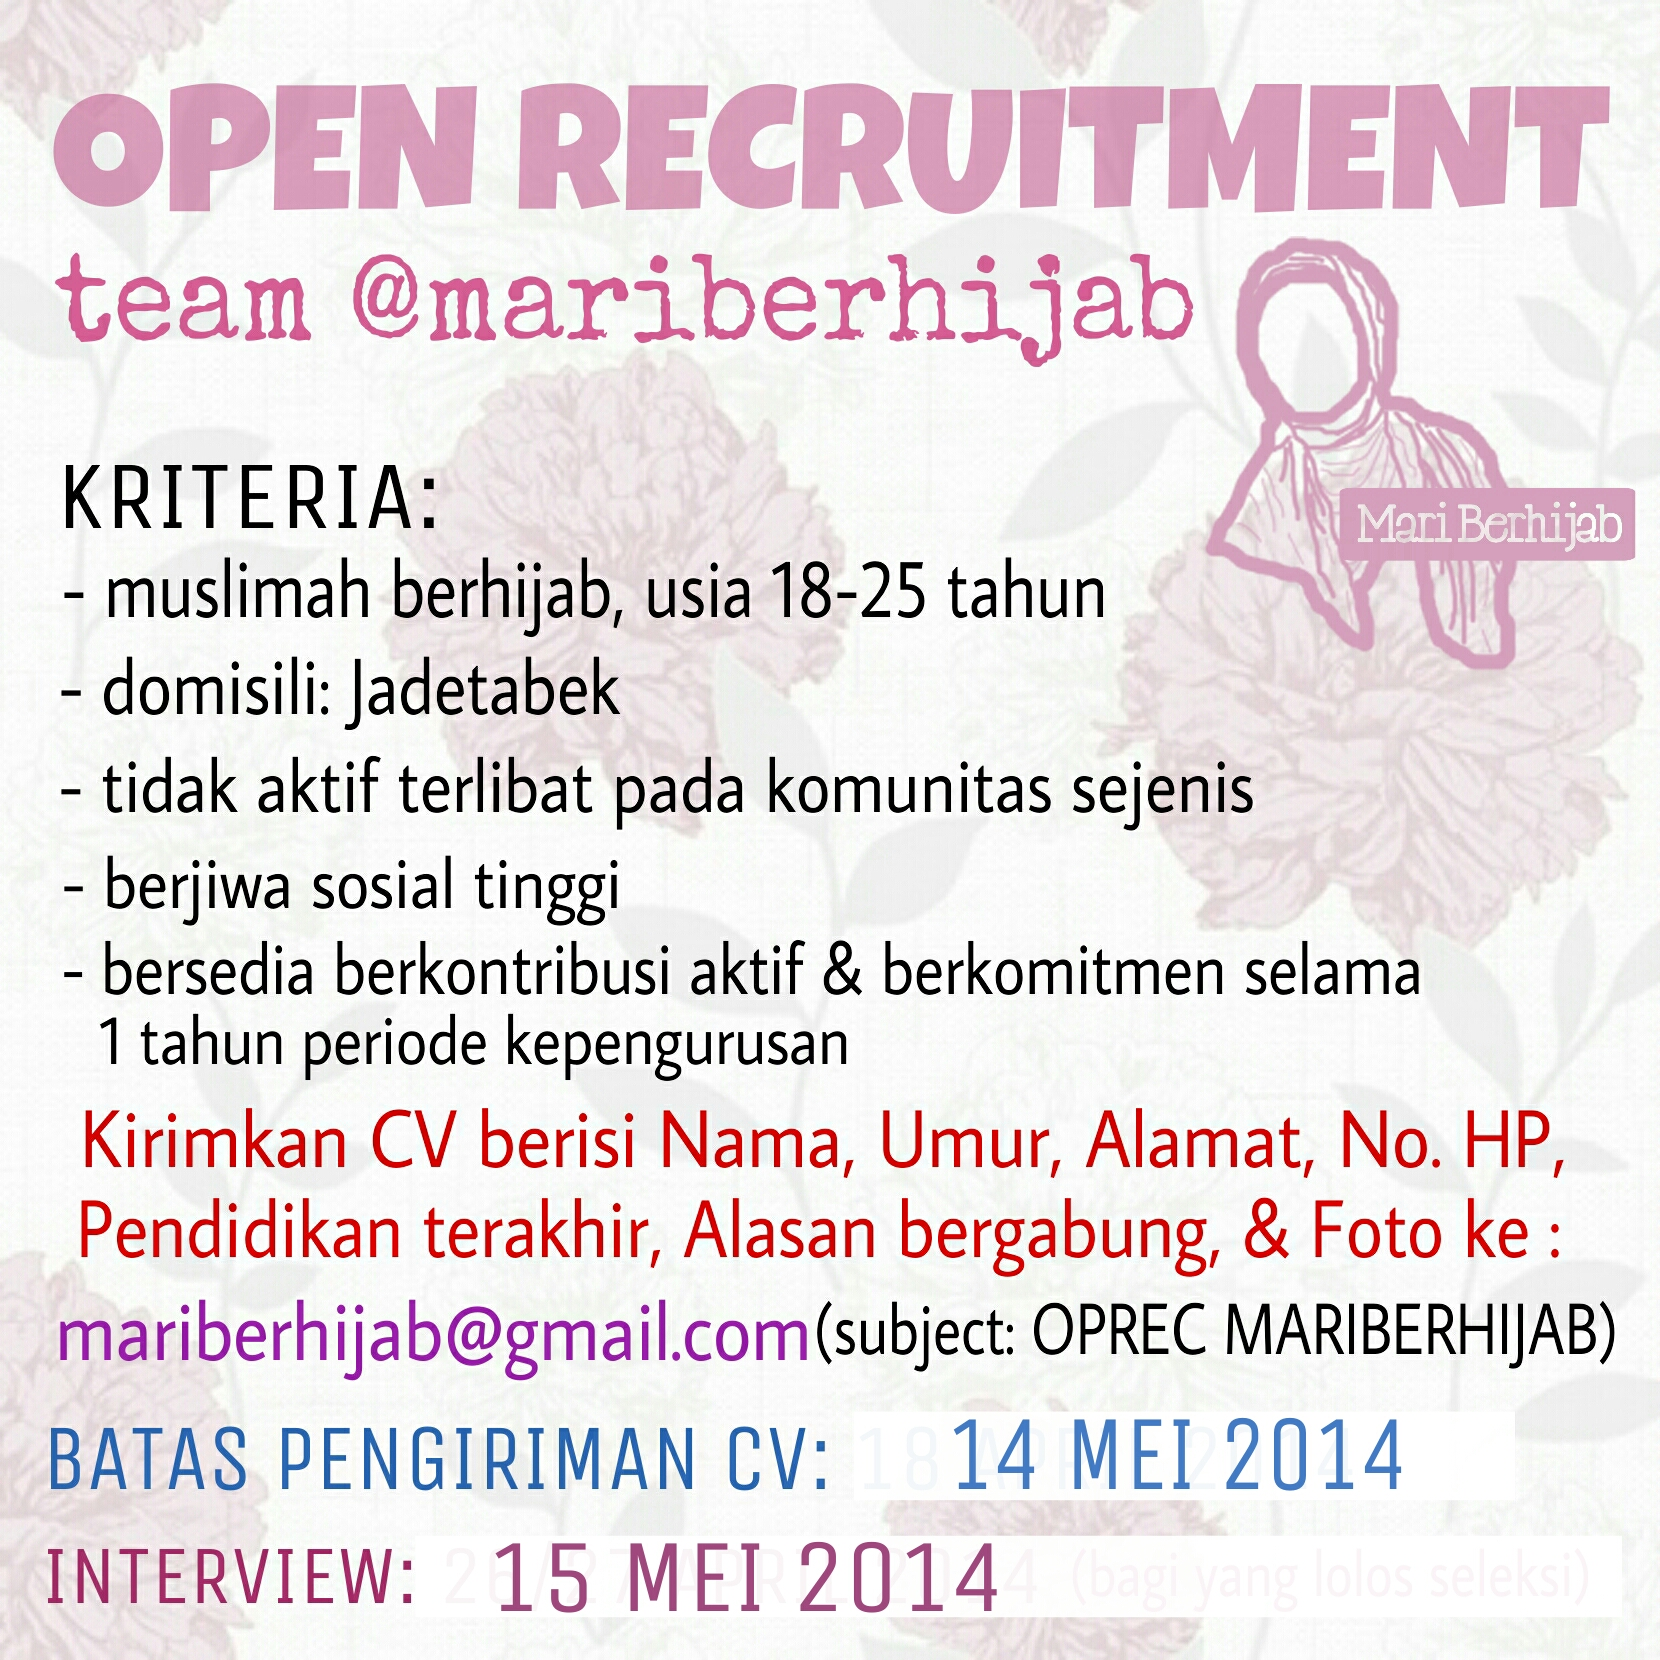 oprecmb-new Urgent: @mariberhijab Open Recruitment!